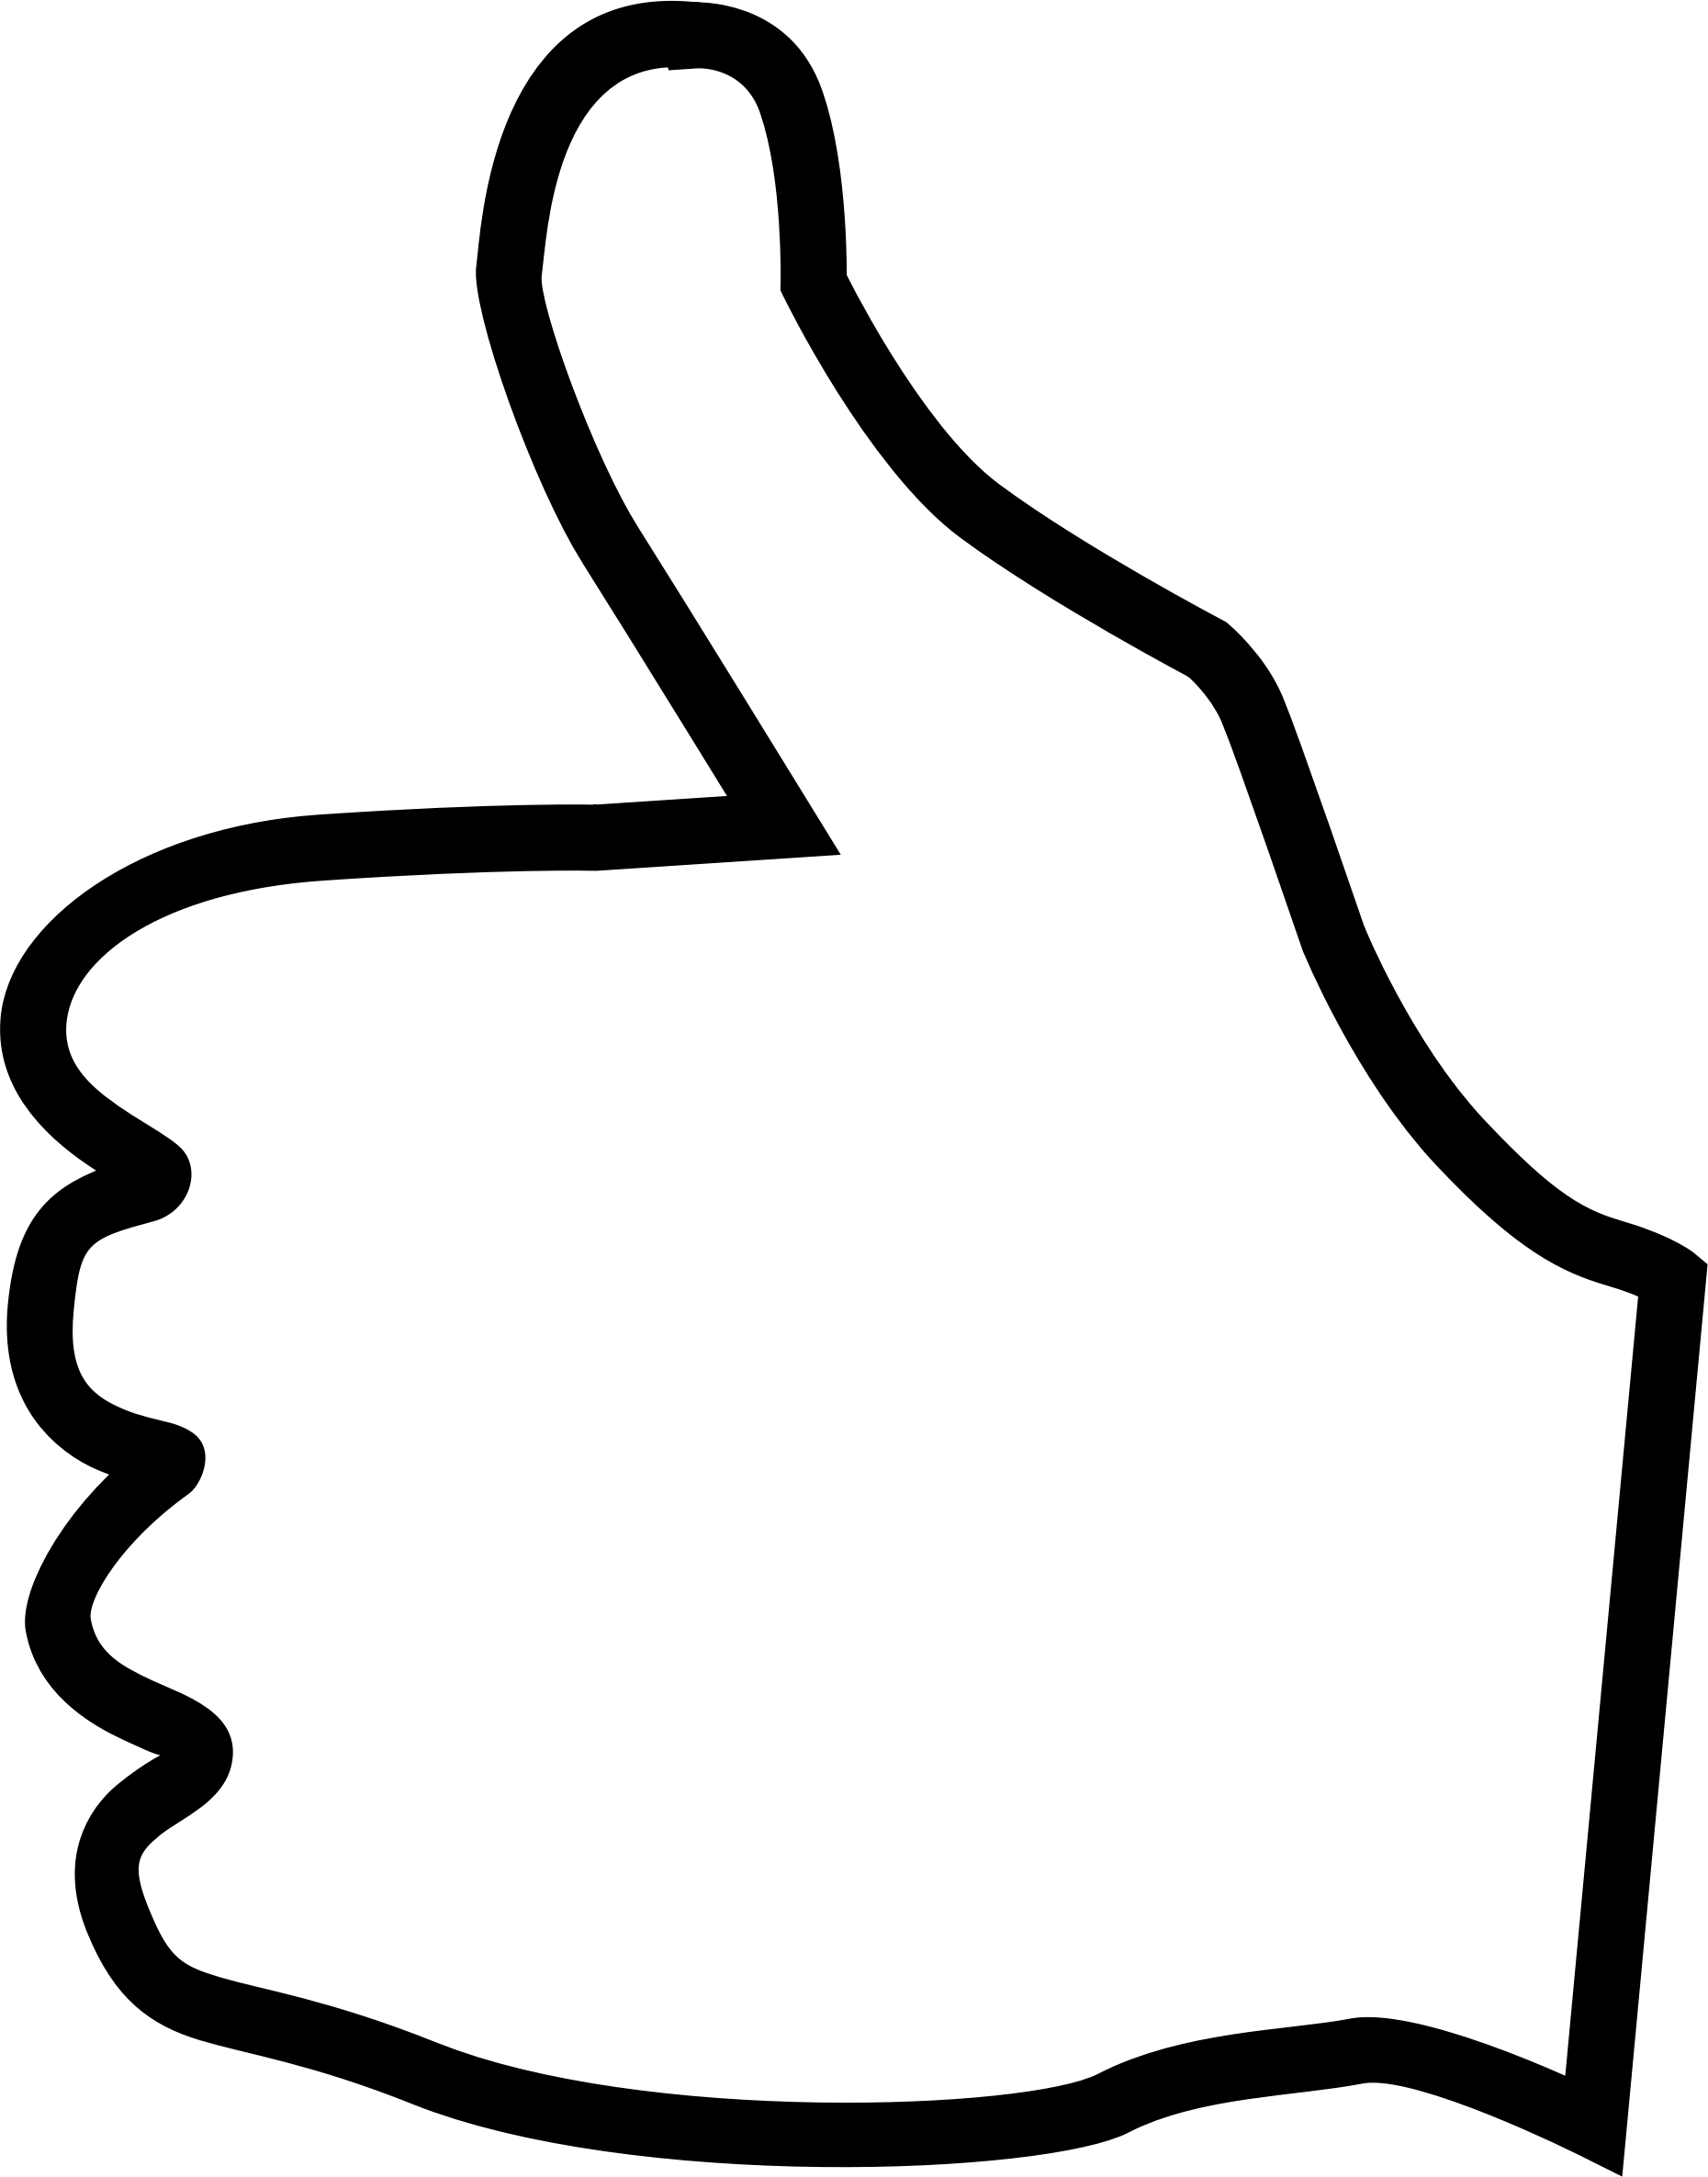 Clipart thumbs svg royalty free Thumbs up thumb clip art clipart 2 - ClipartPost svg royalty free